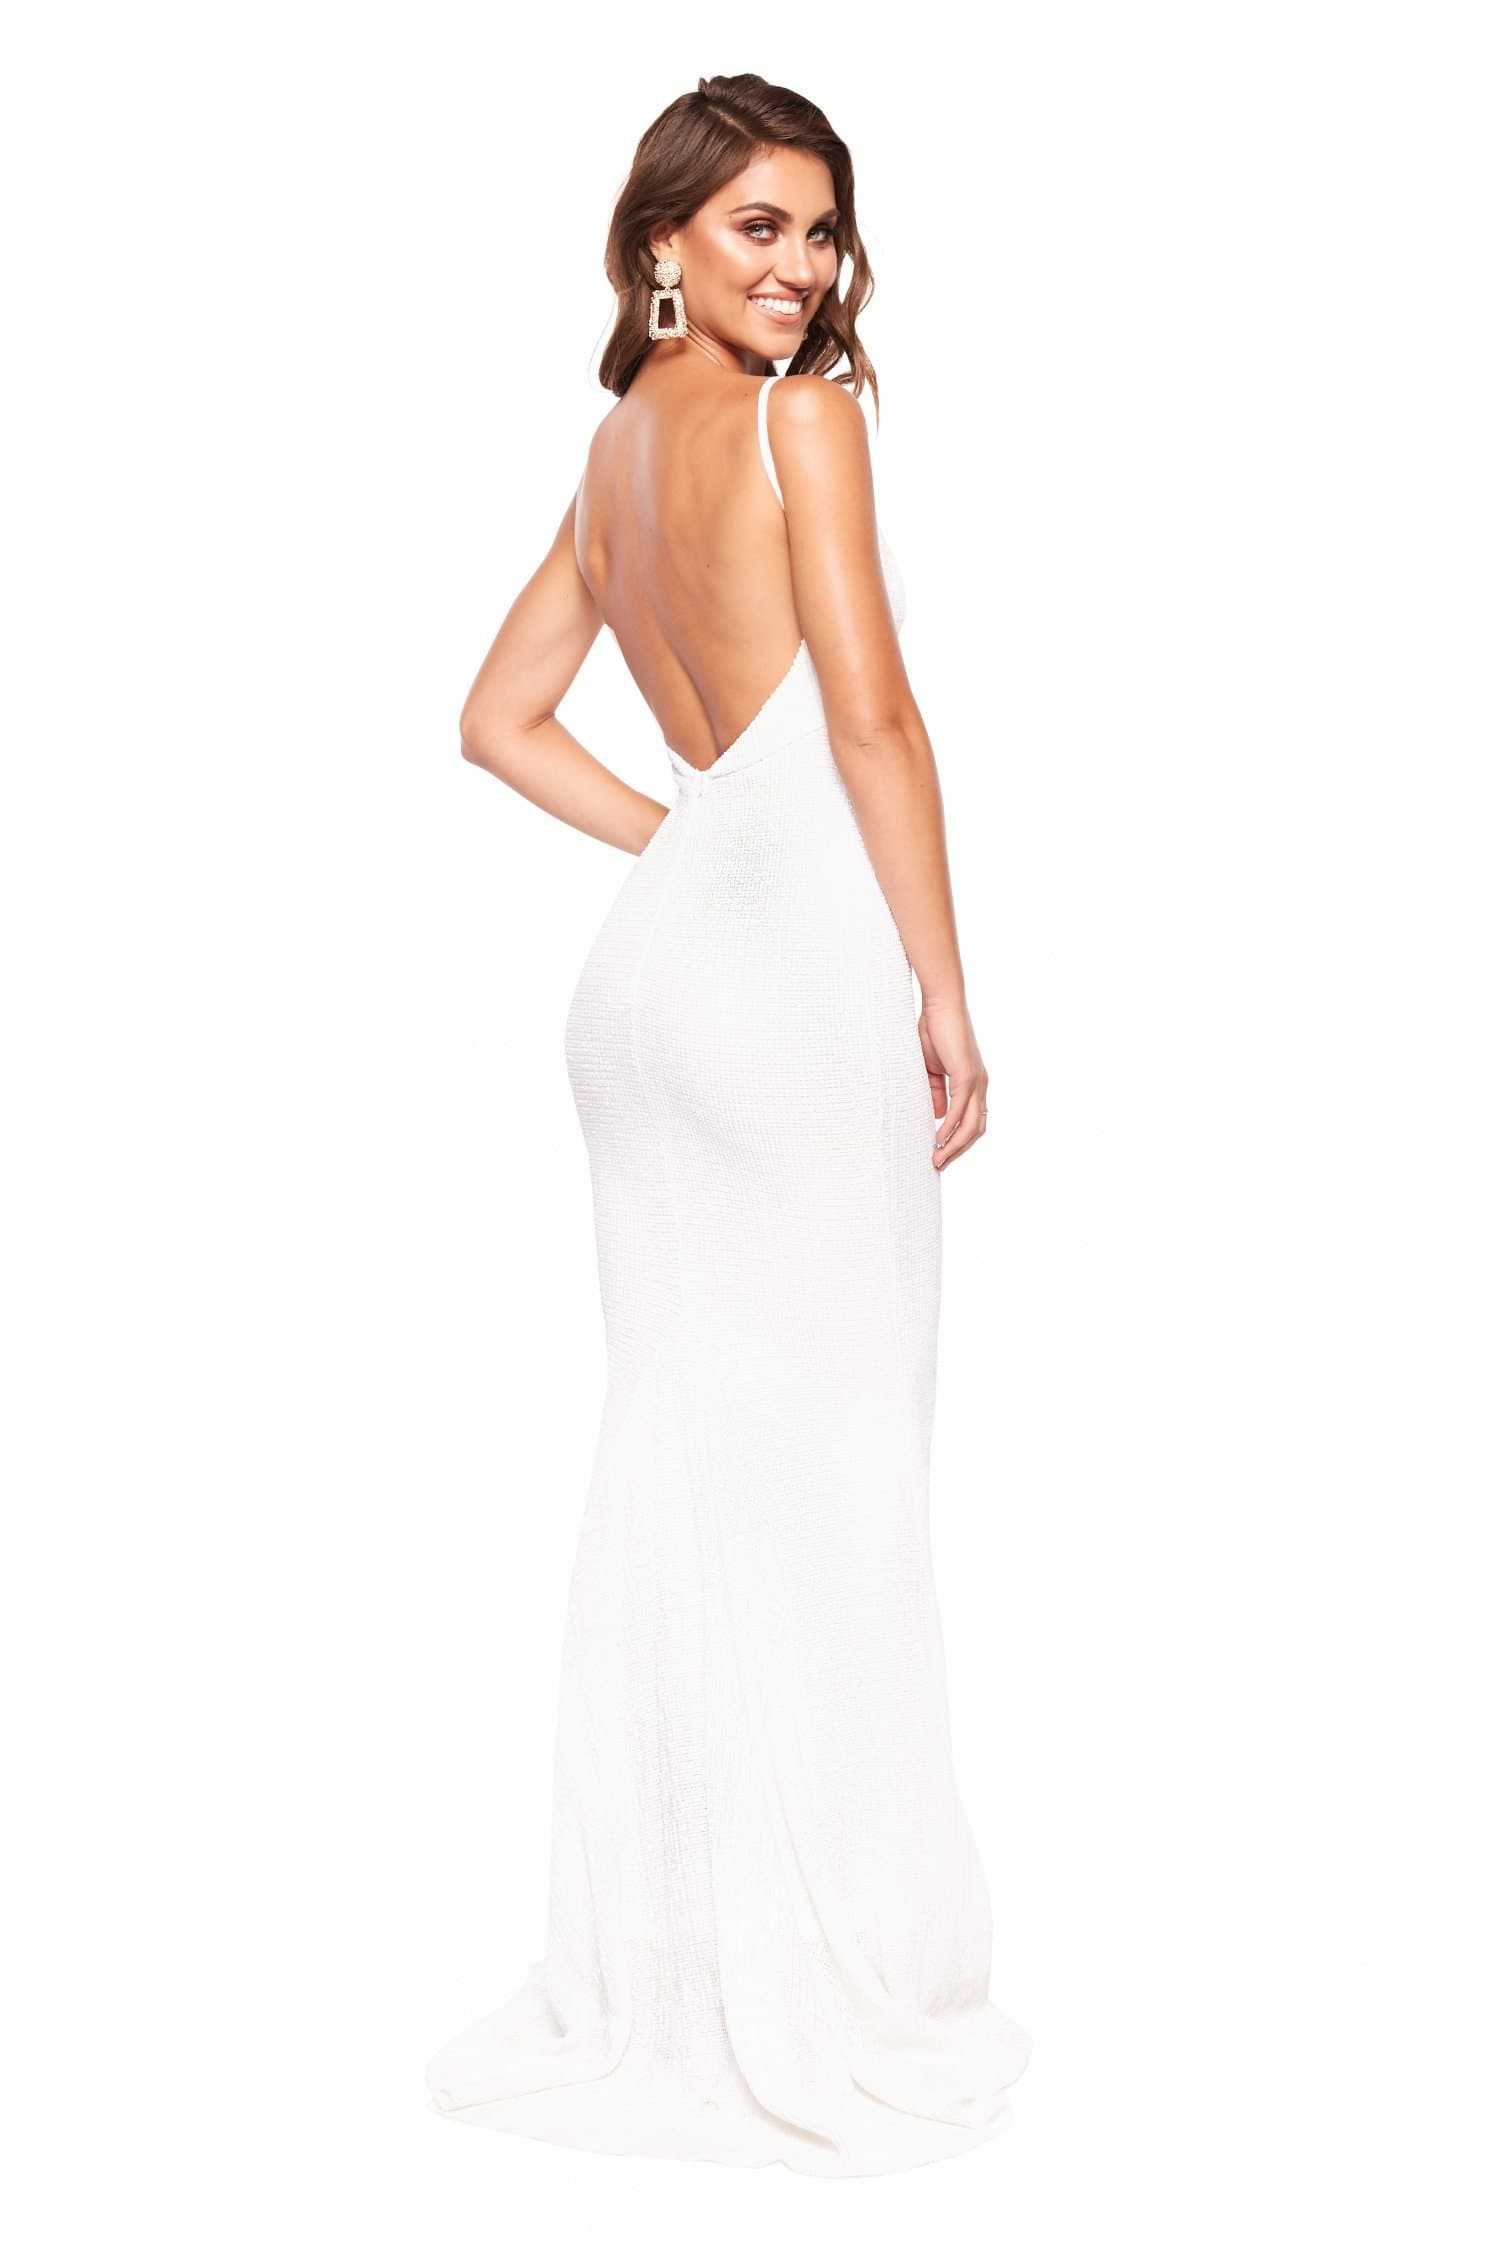 A&N Cynthia Gown - Sparkling White Gown with V-Neck and Low Back